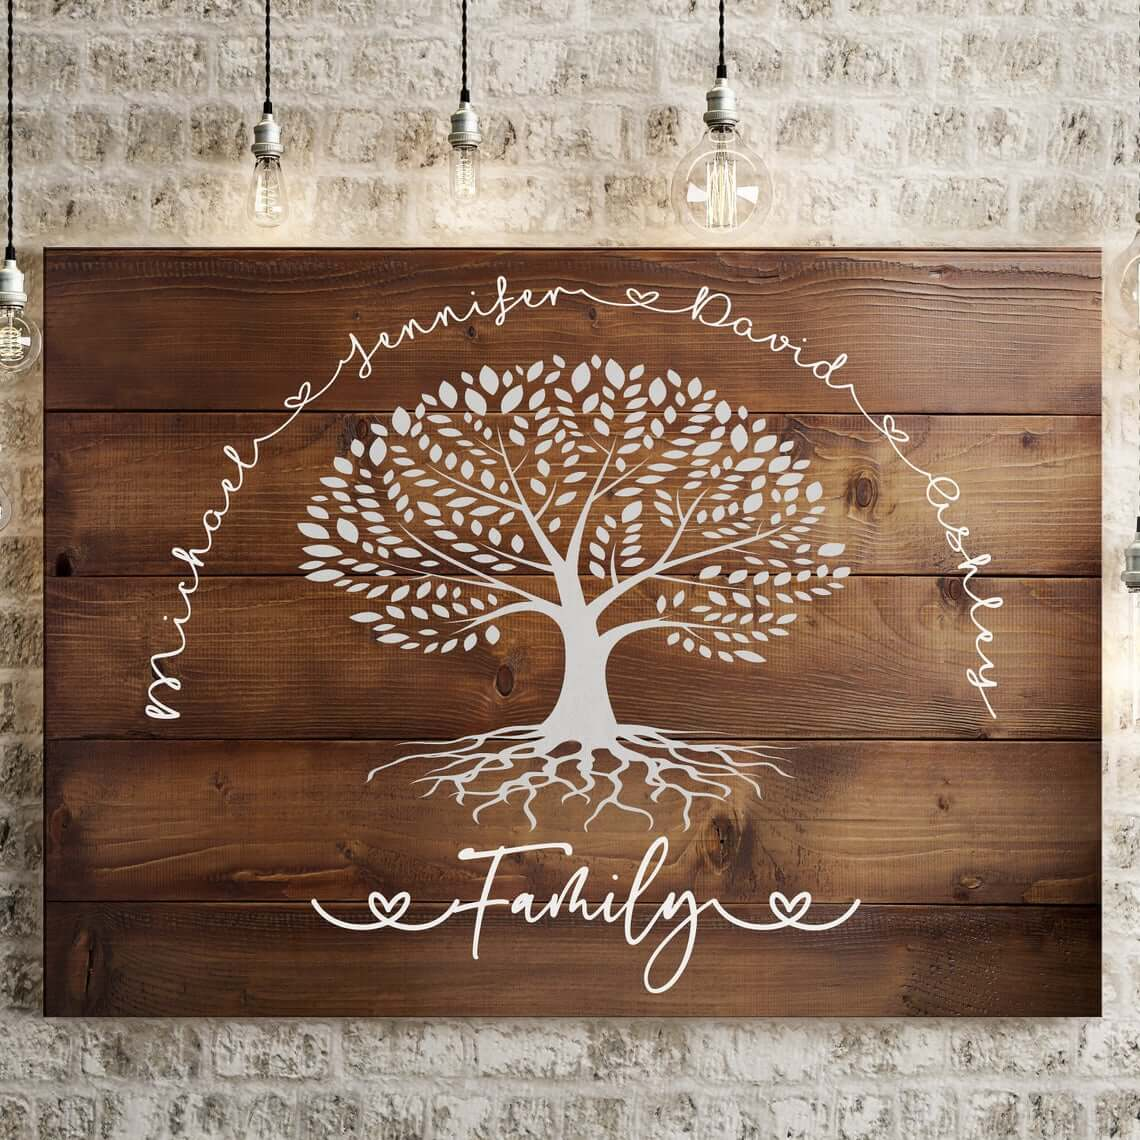 Family Tree Painted on Wood